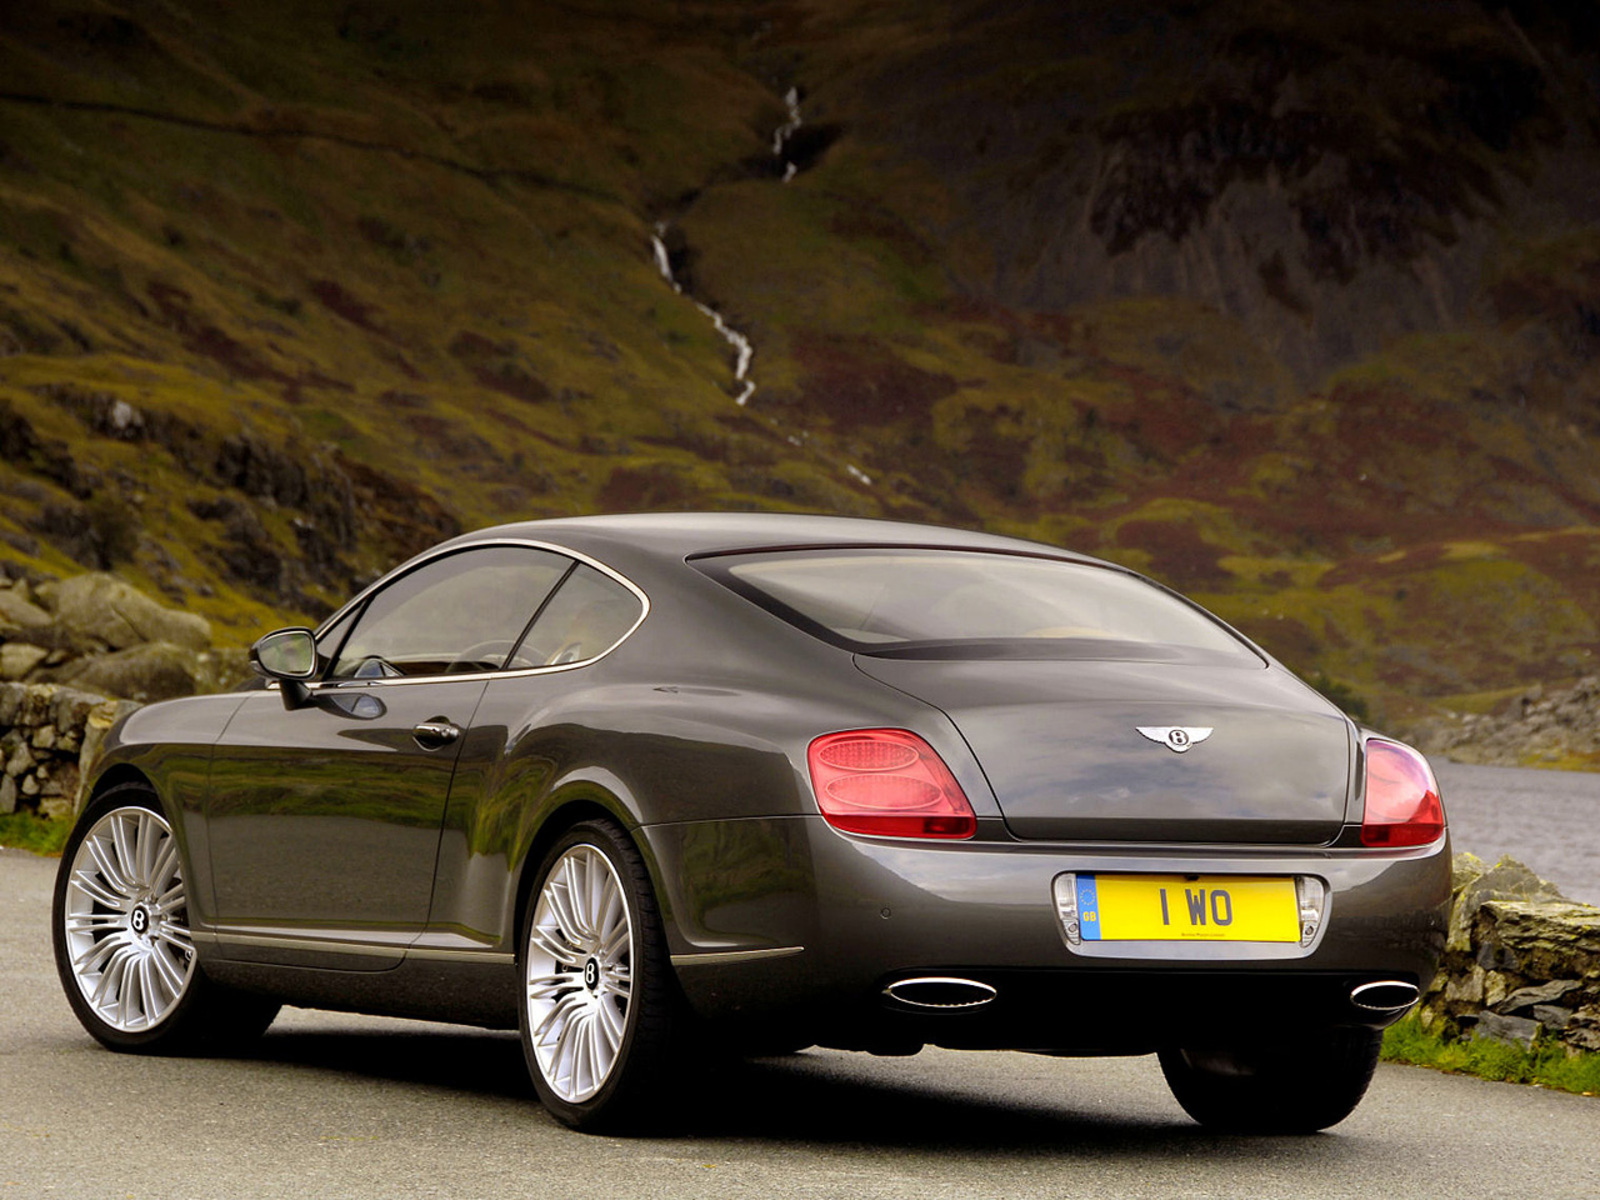 2012 Bentley Continental GT Speed Rear Angle (Photo 5 of 6)